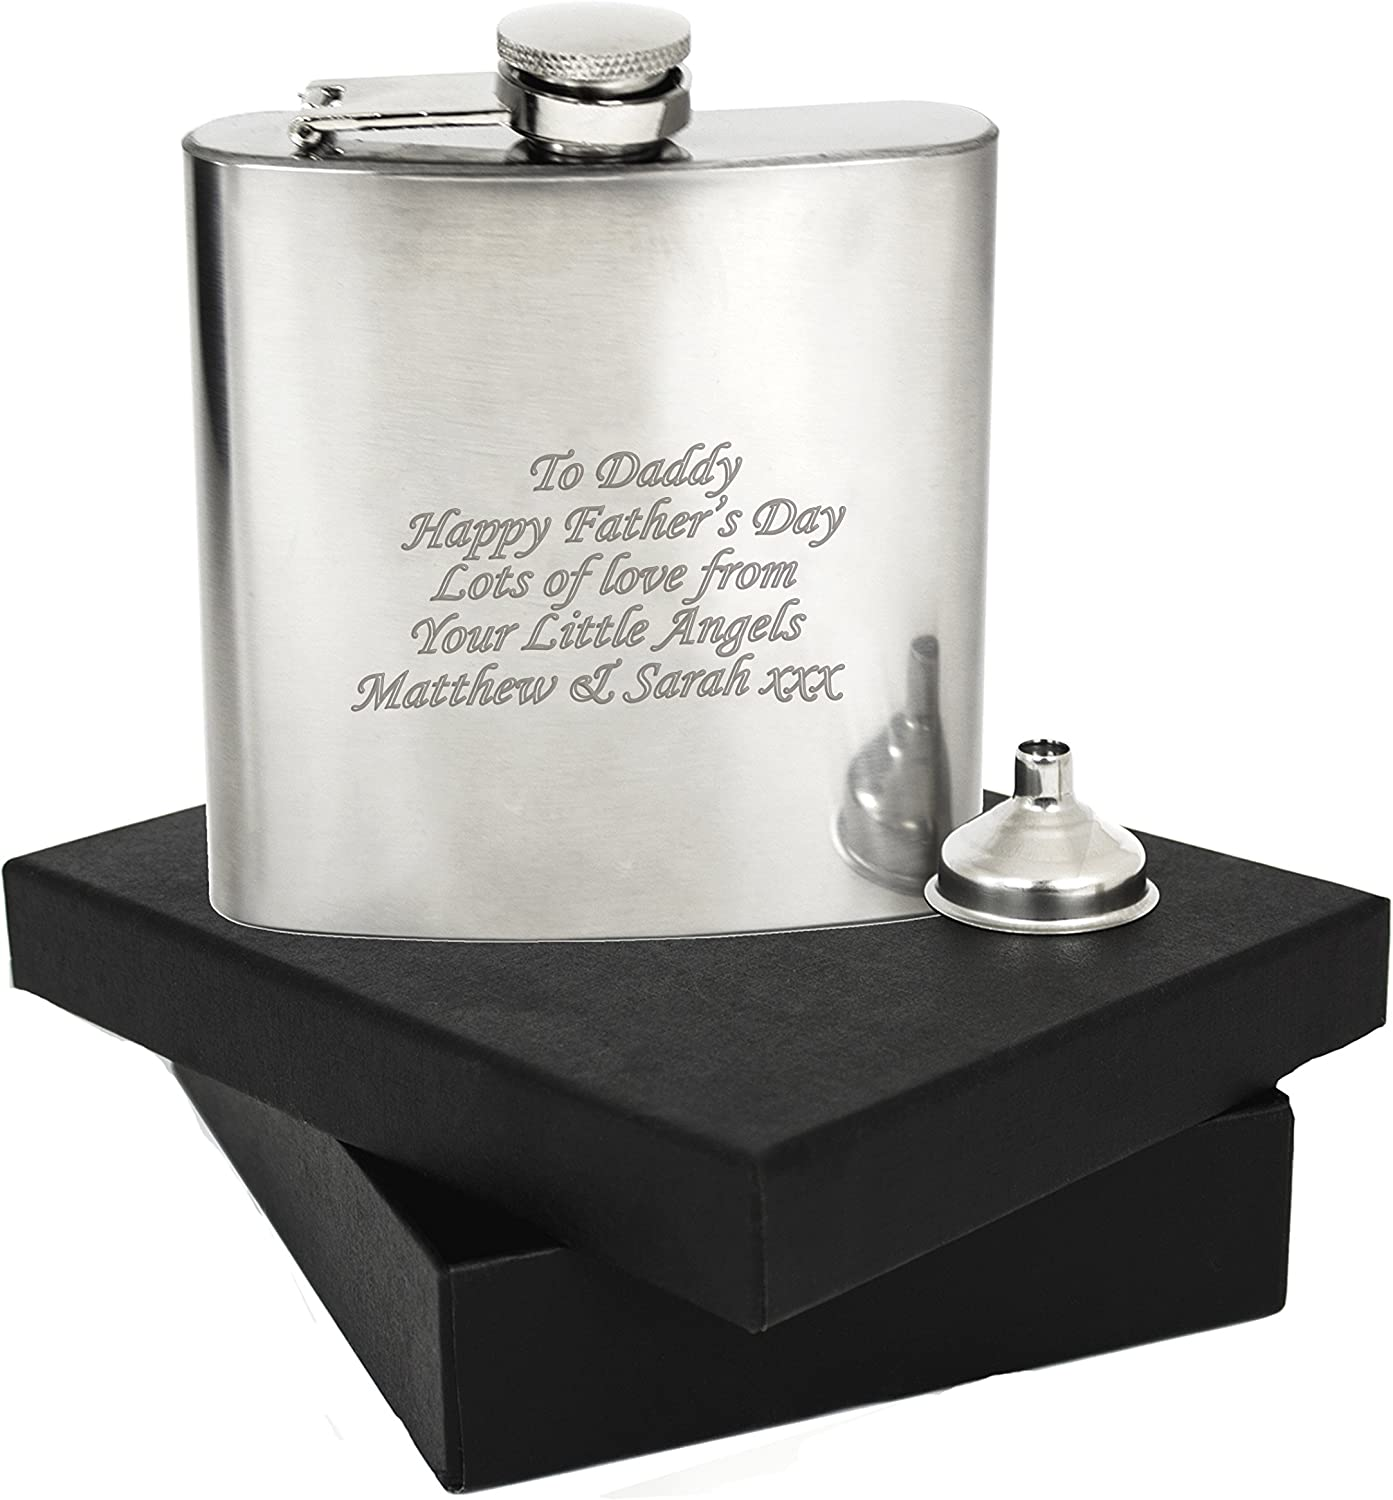 Personalised Hip Flask 6oz Engraved Stainless Steel Gift FREE ENGRAVING